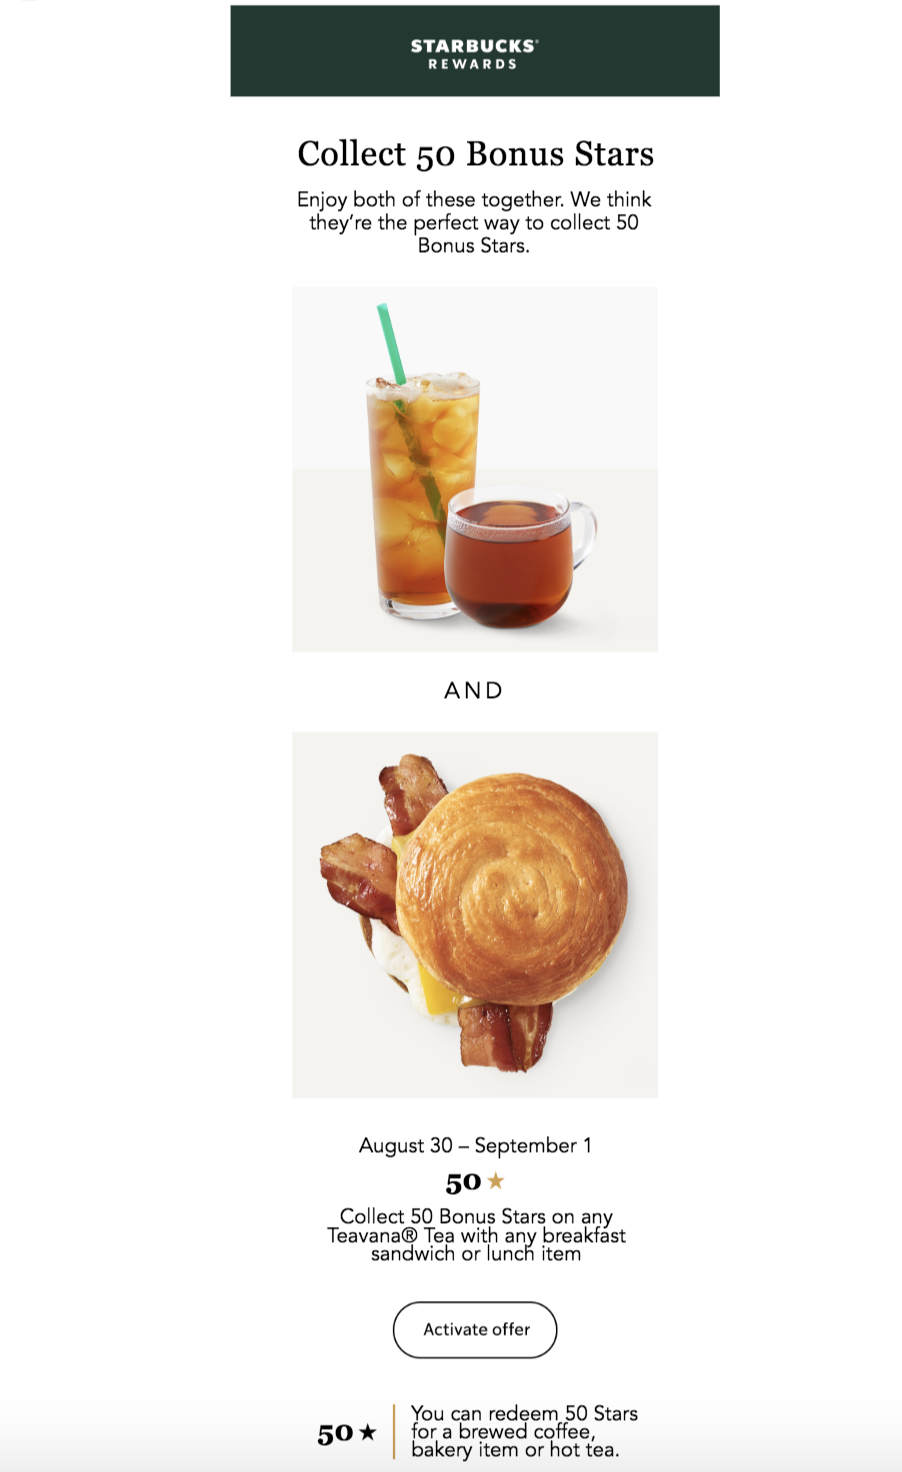 starbucks email design example